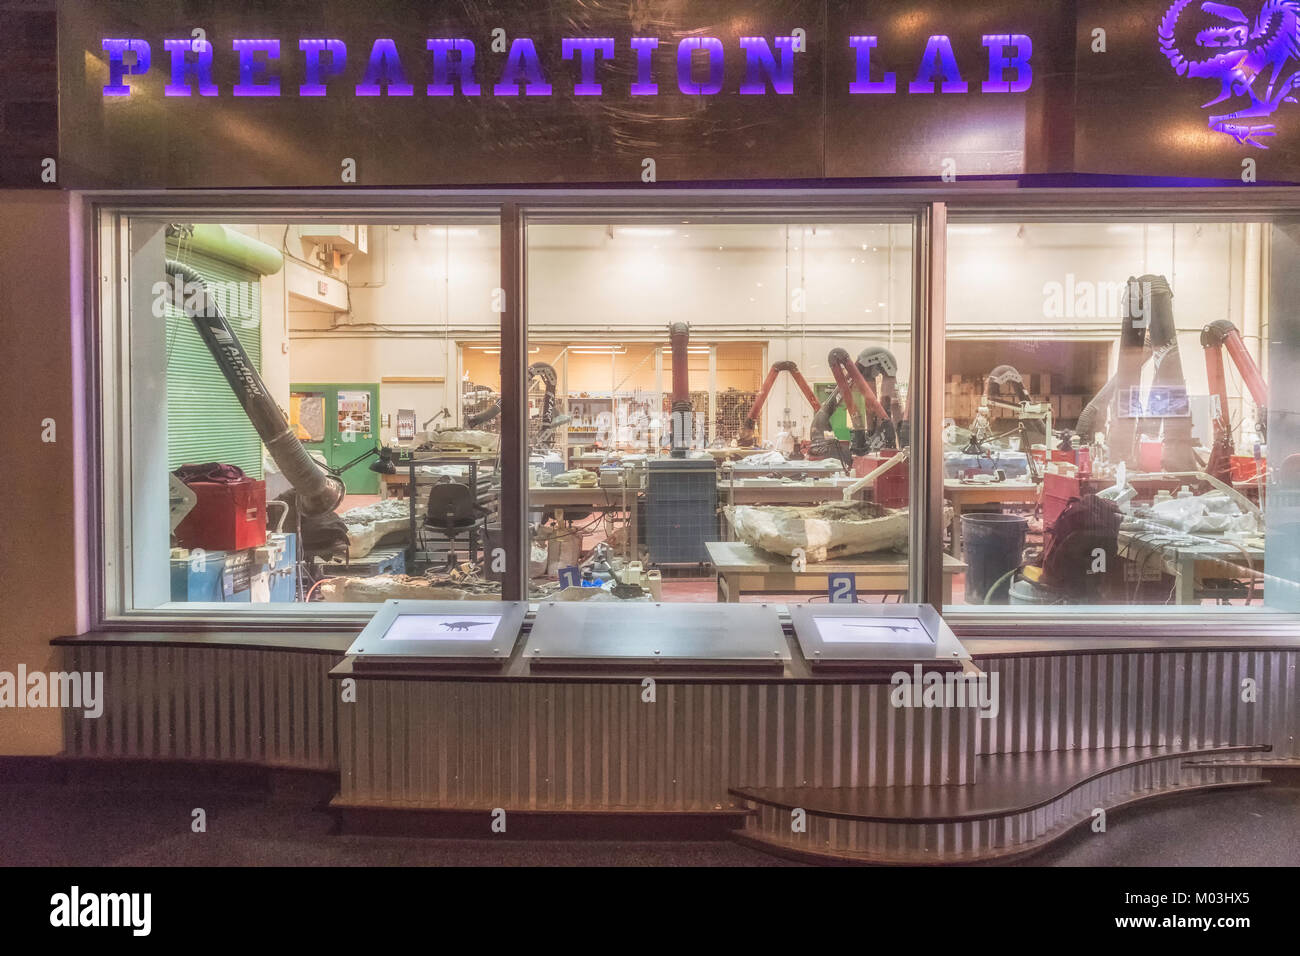 Preparation Lab at the Royal Tyrrell Museum in Drumheller Alberta Canada - Stock Image